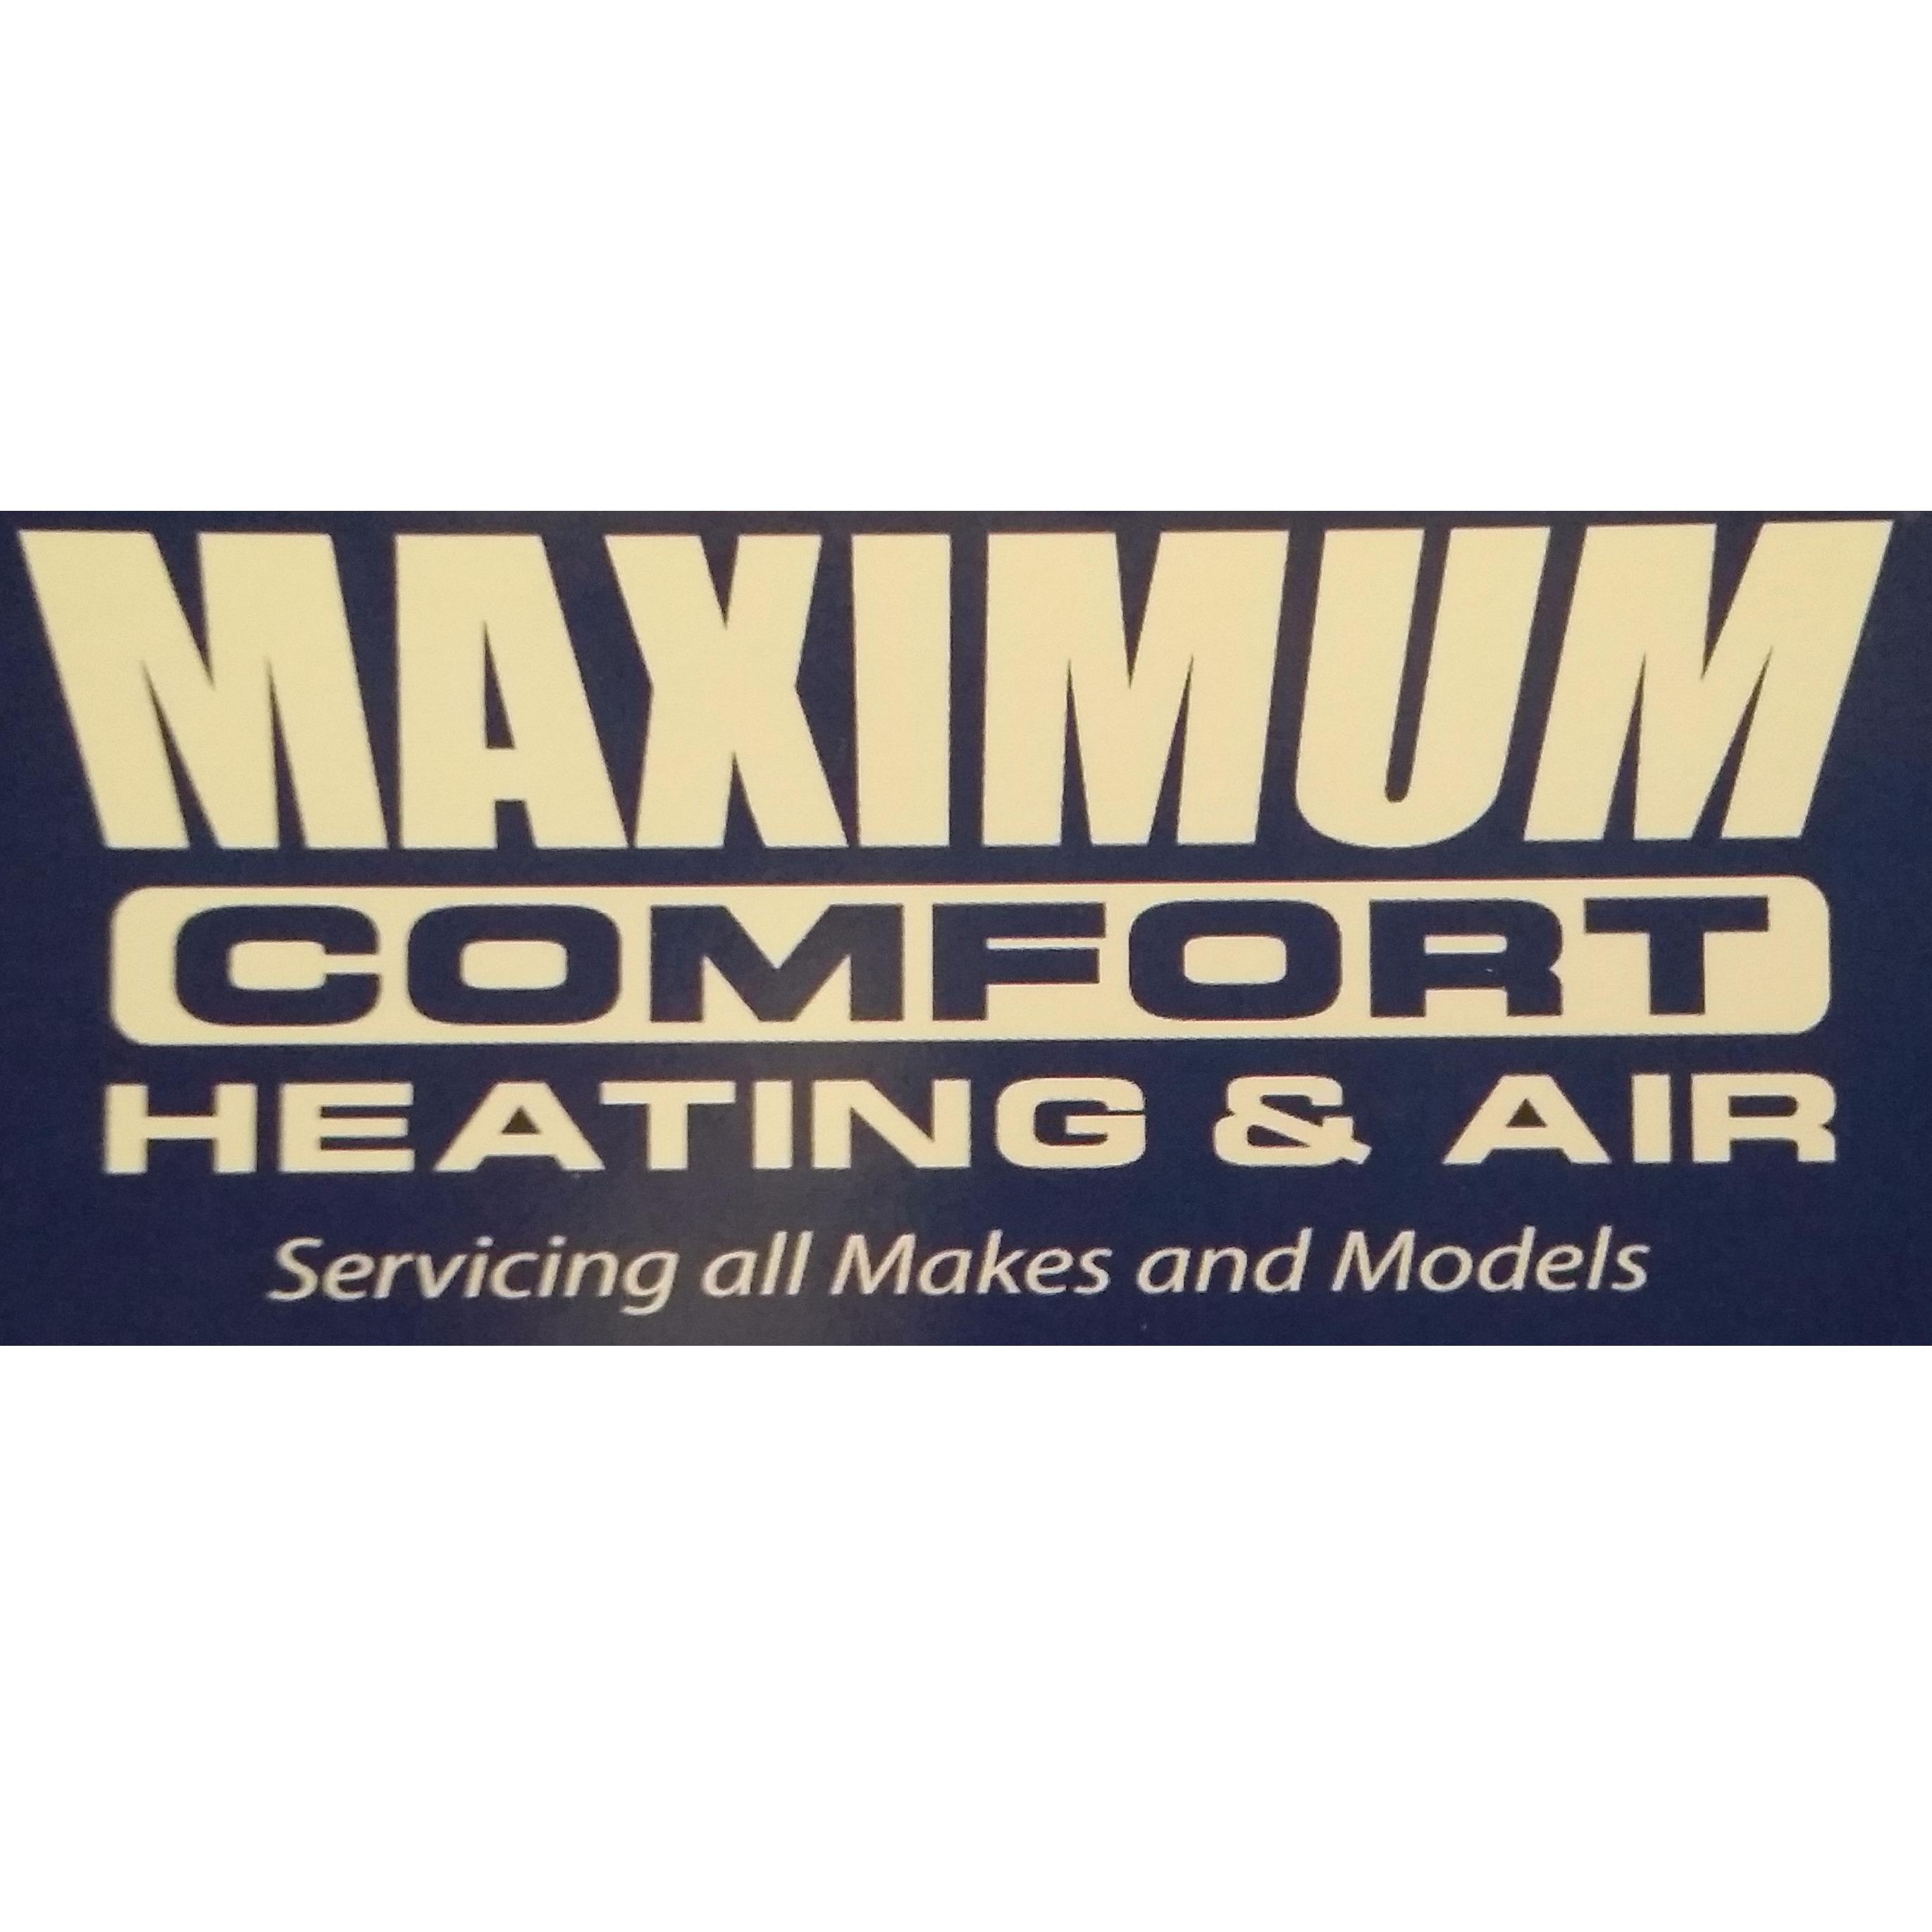 Maximum Comfort Heating & Air LLC